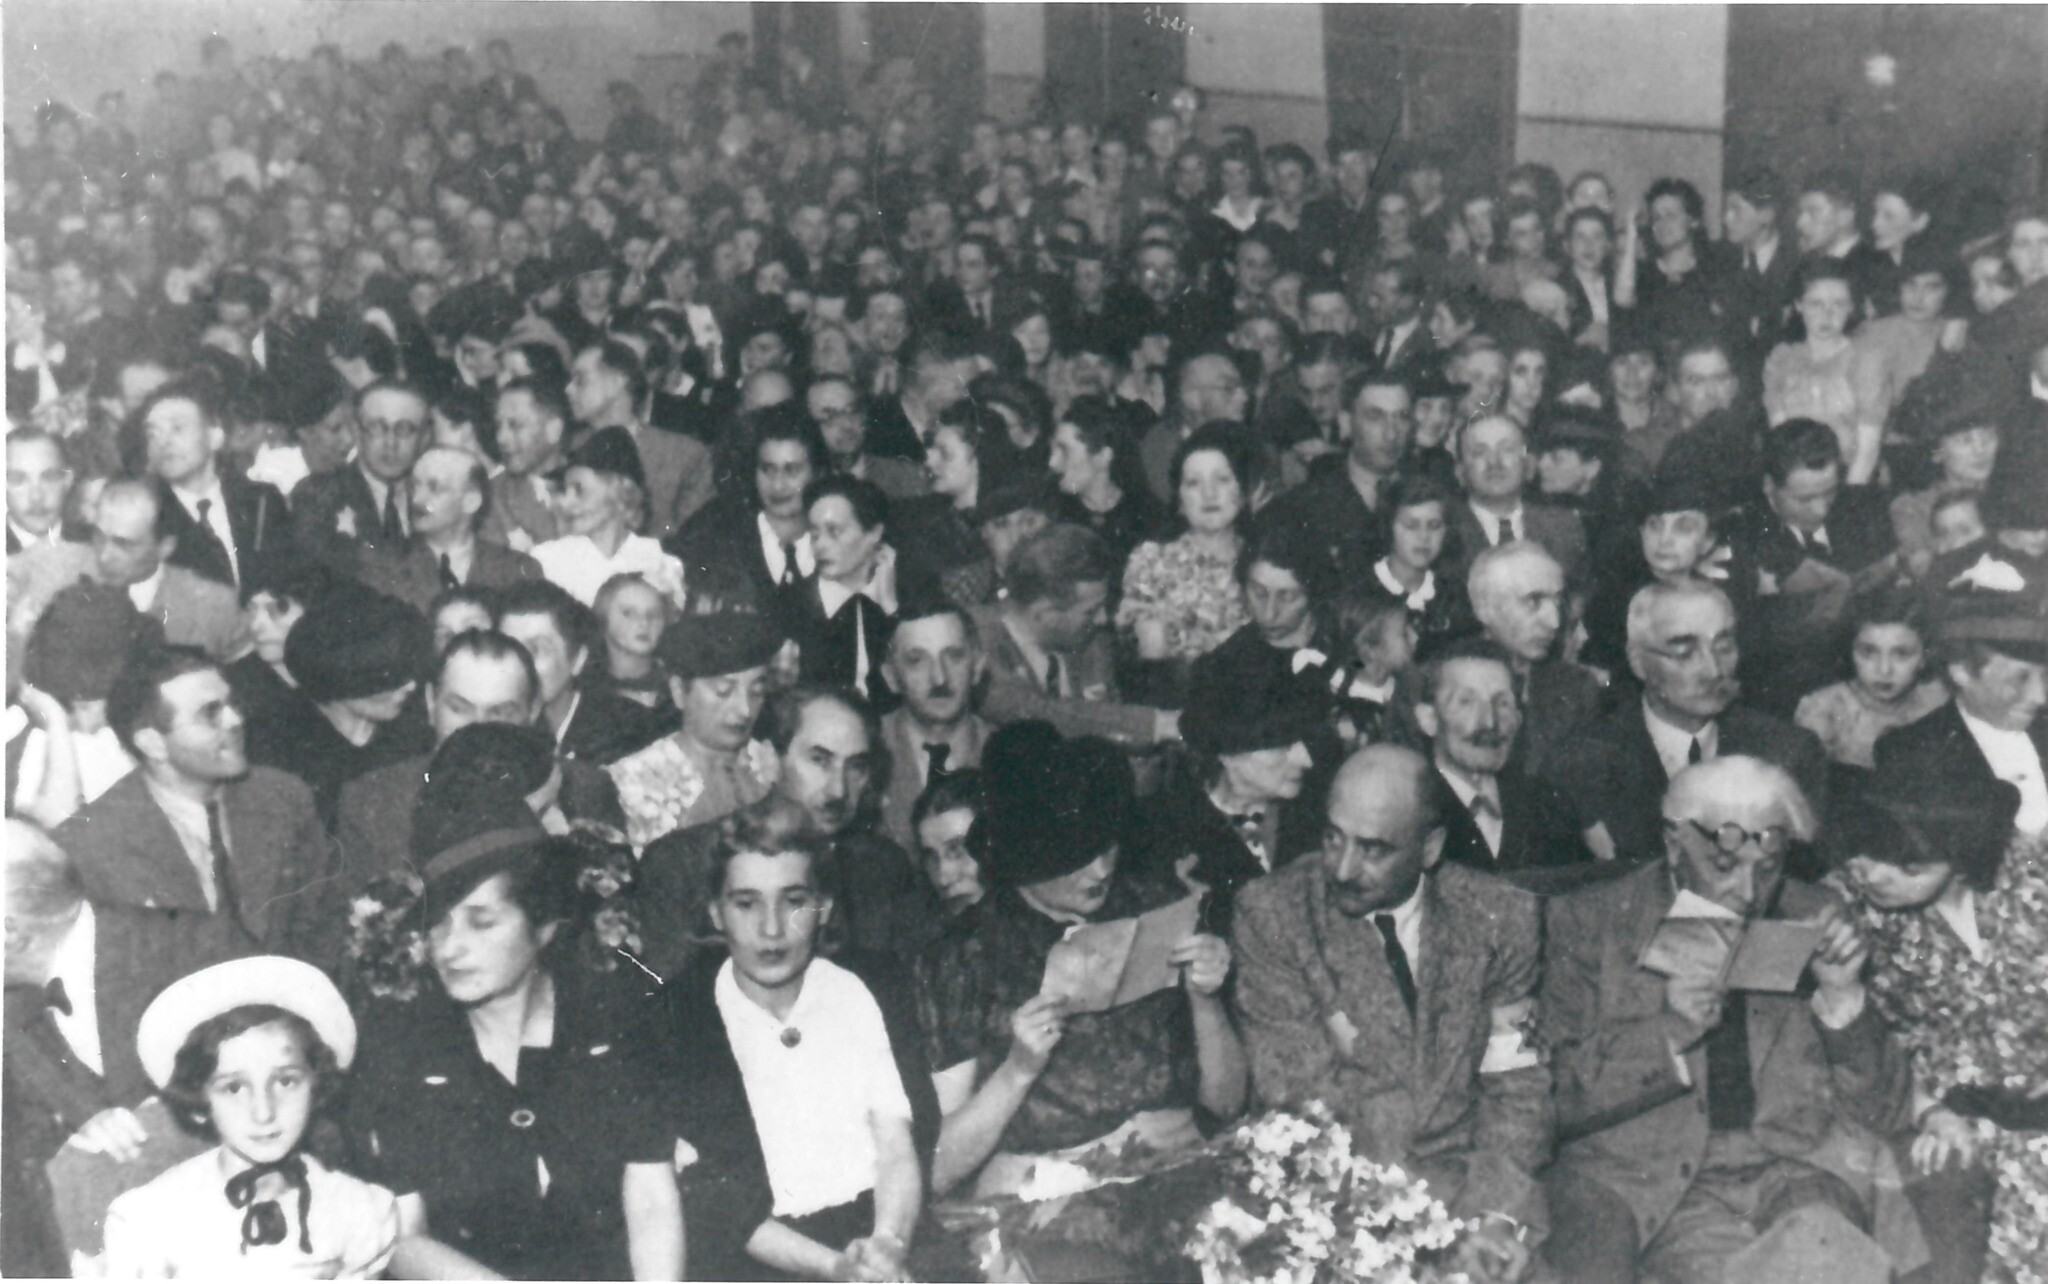 A musical evening in the Łódź Ghetto, circa 1940-1943. (Wiener Holocaust Library Collections)